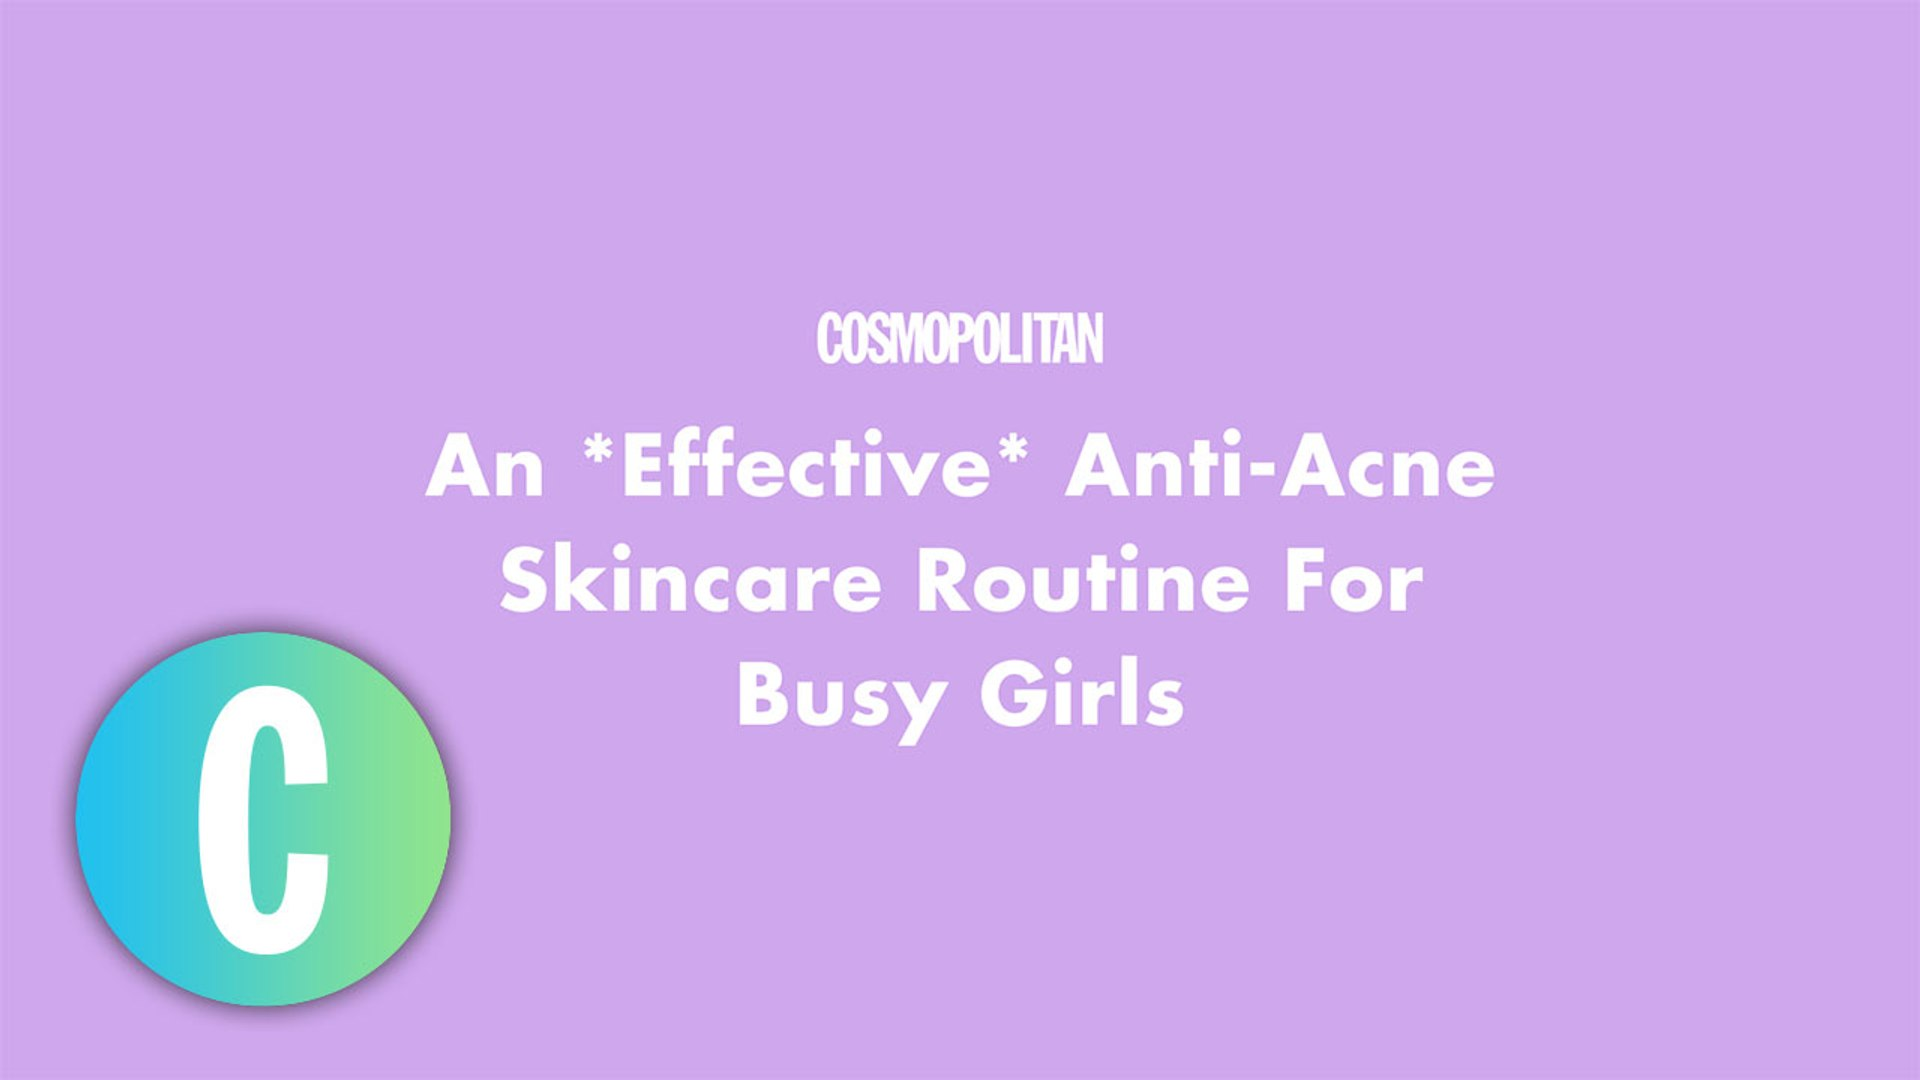 An *Effective* Anti-Acne Skincare Routine For Busy Girls